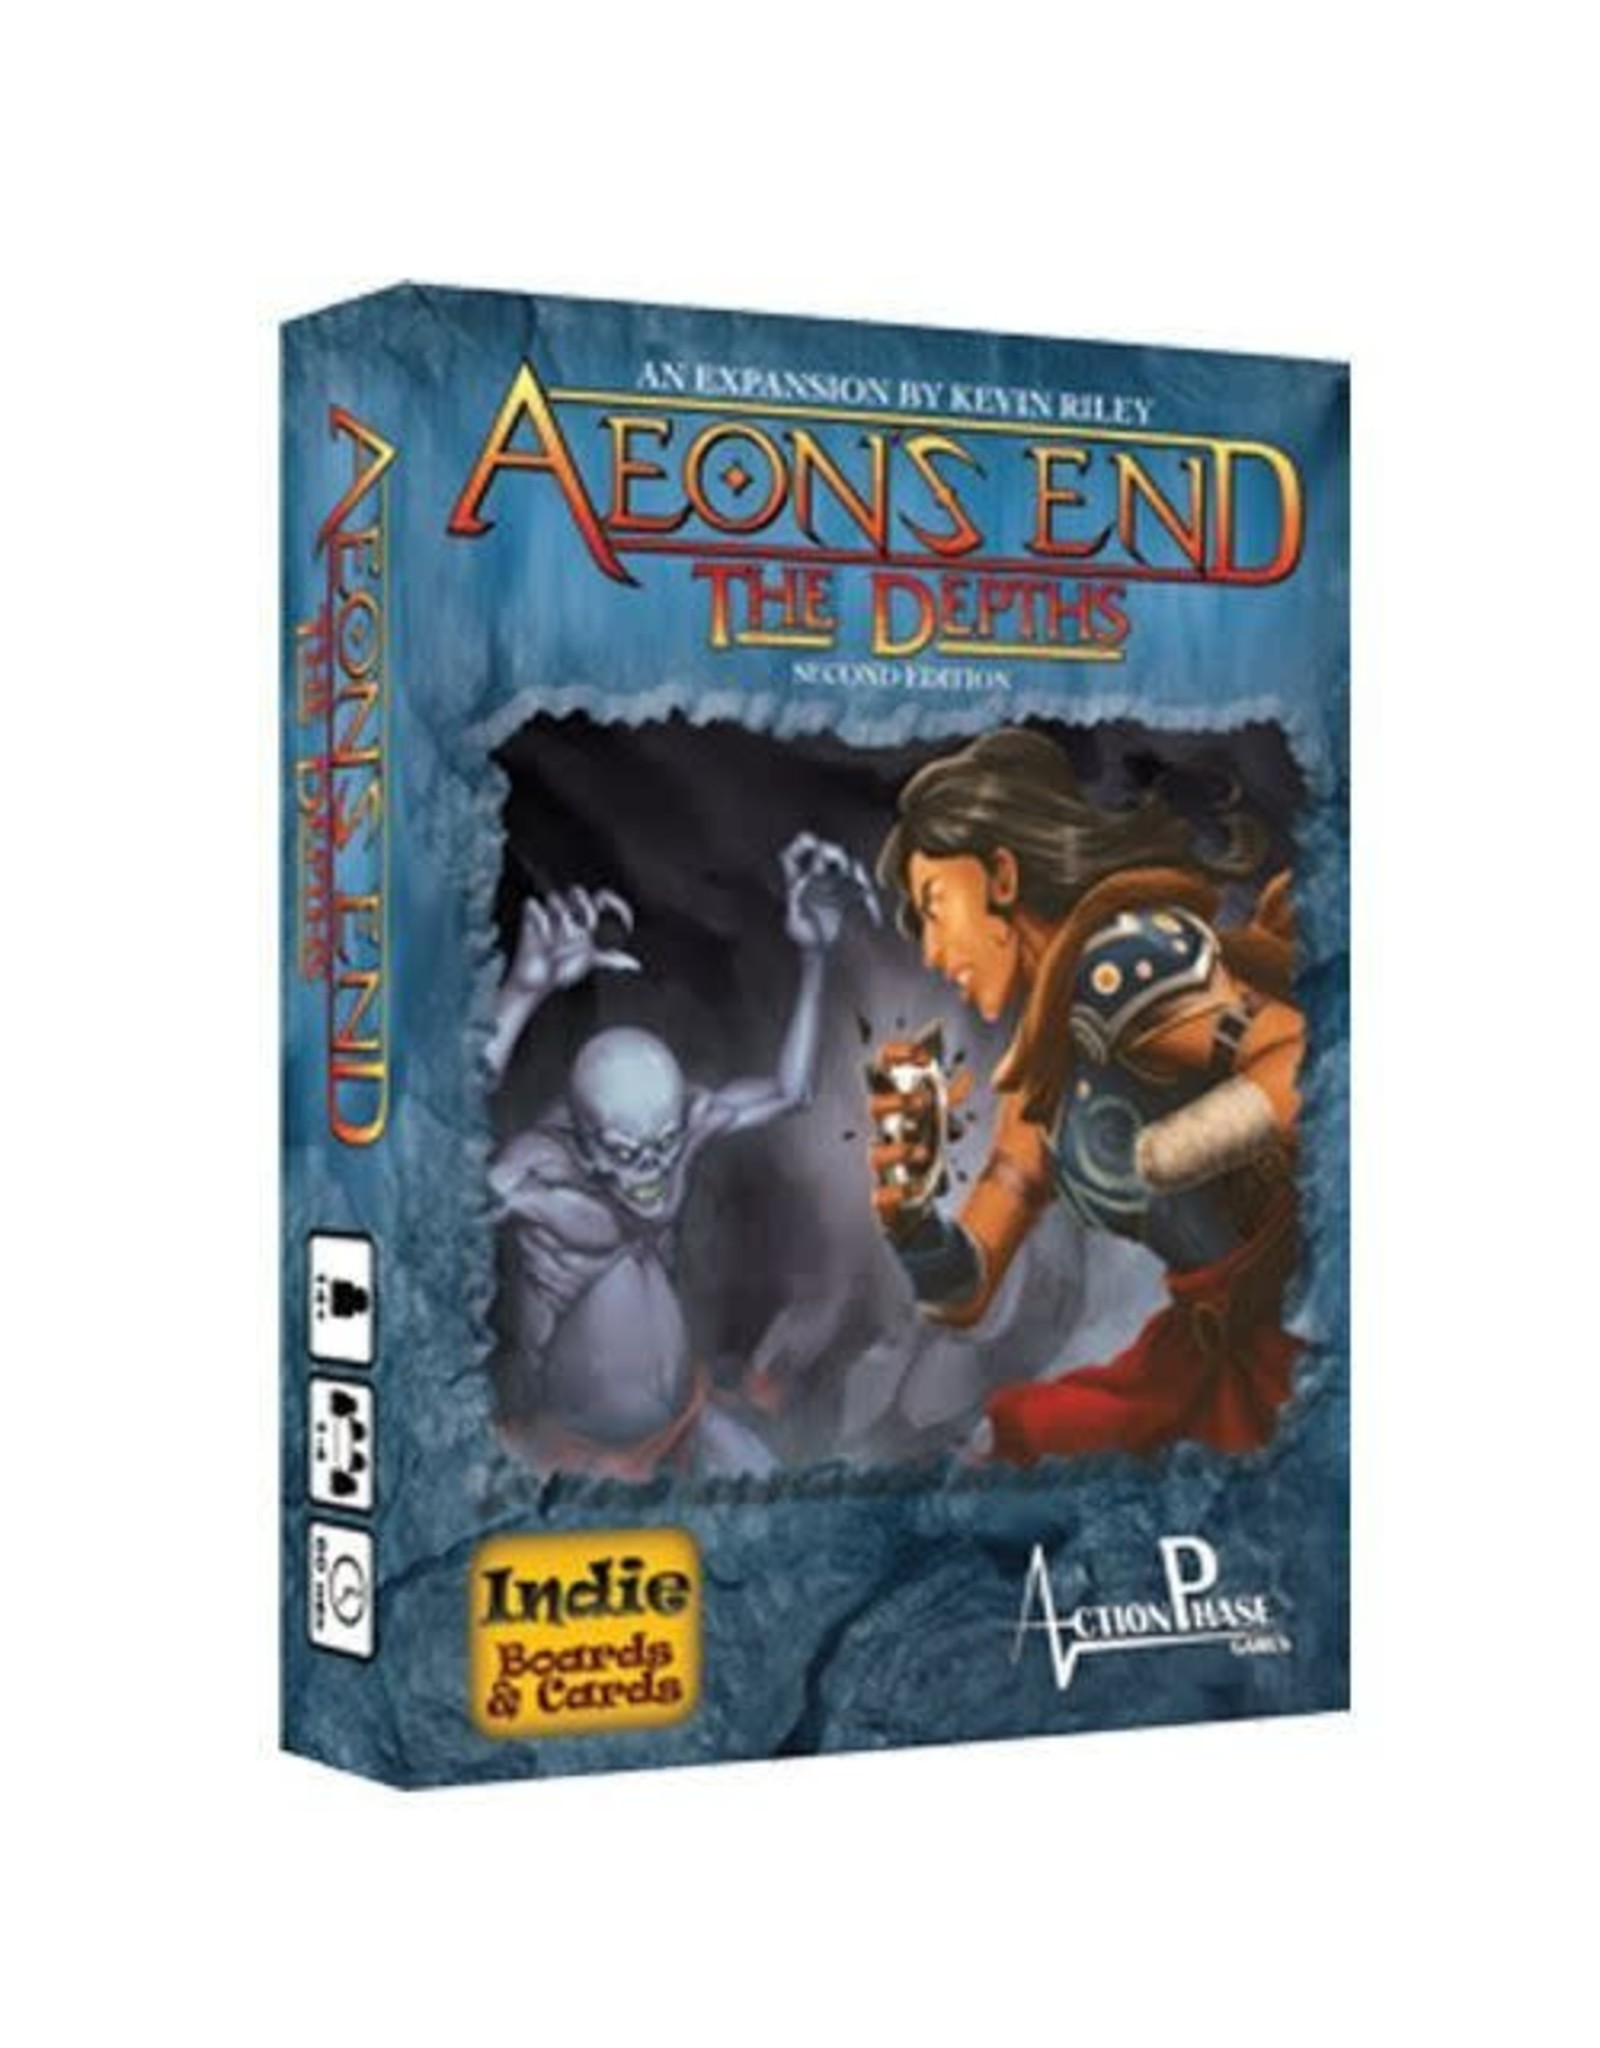 Indie Board & Cards AEON'S END: THE DEPTHS SECOND EDITION